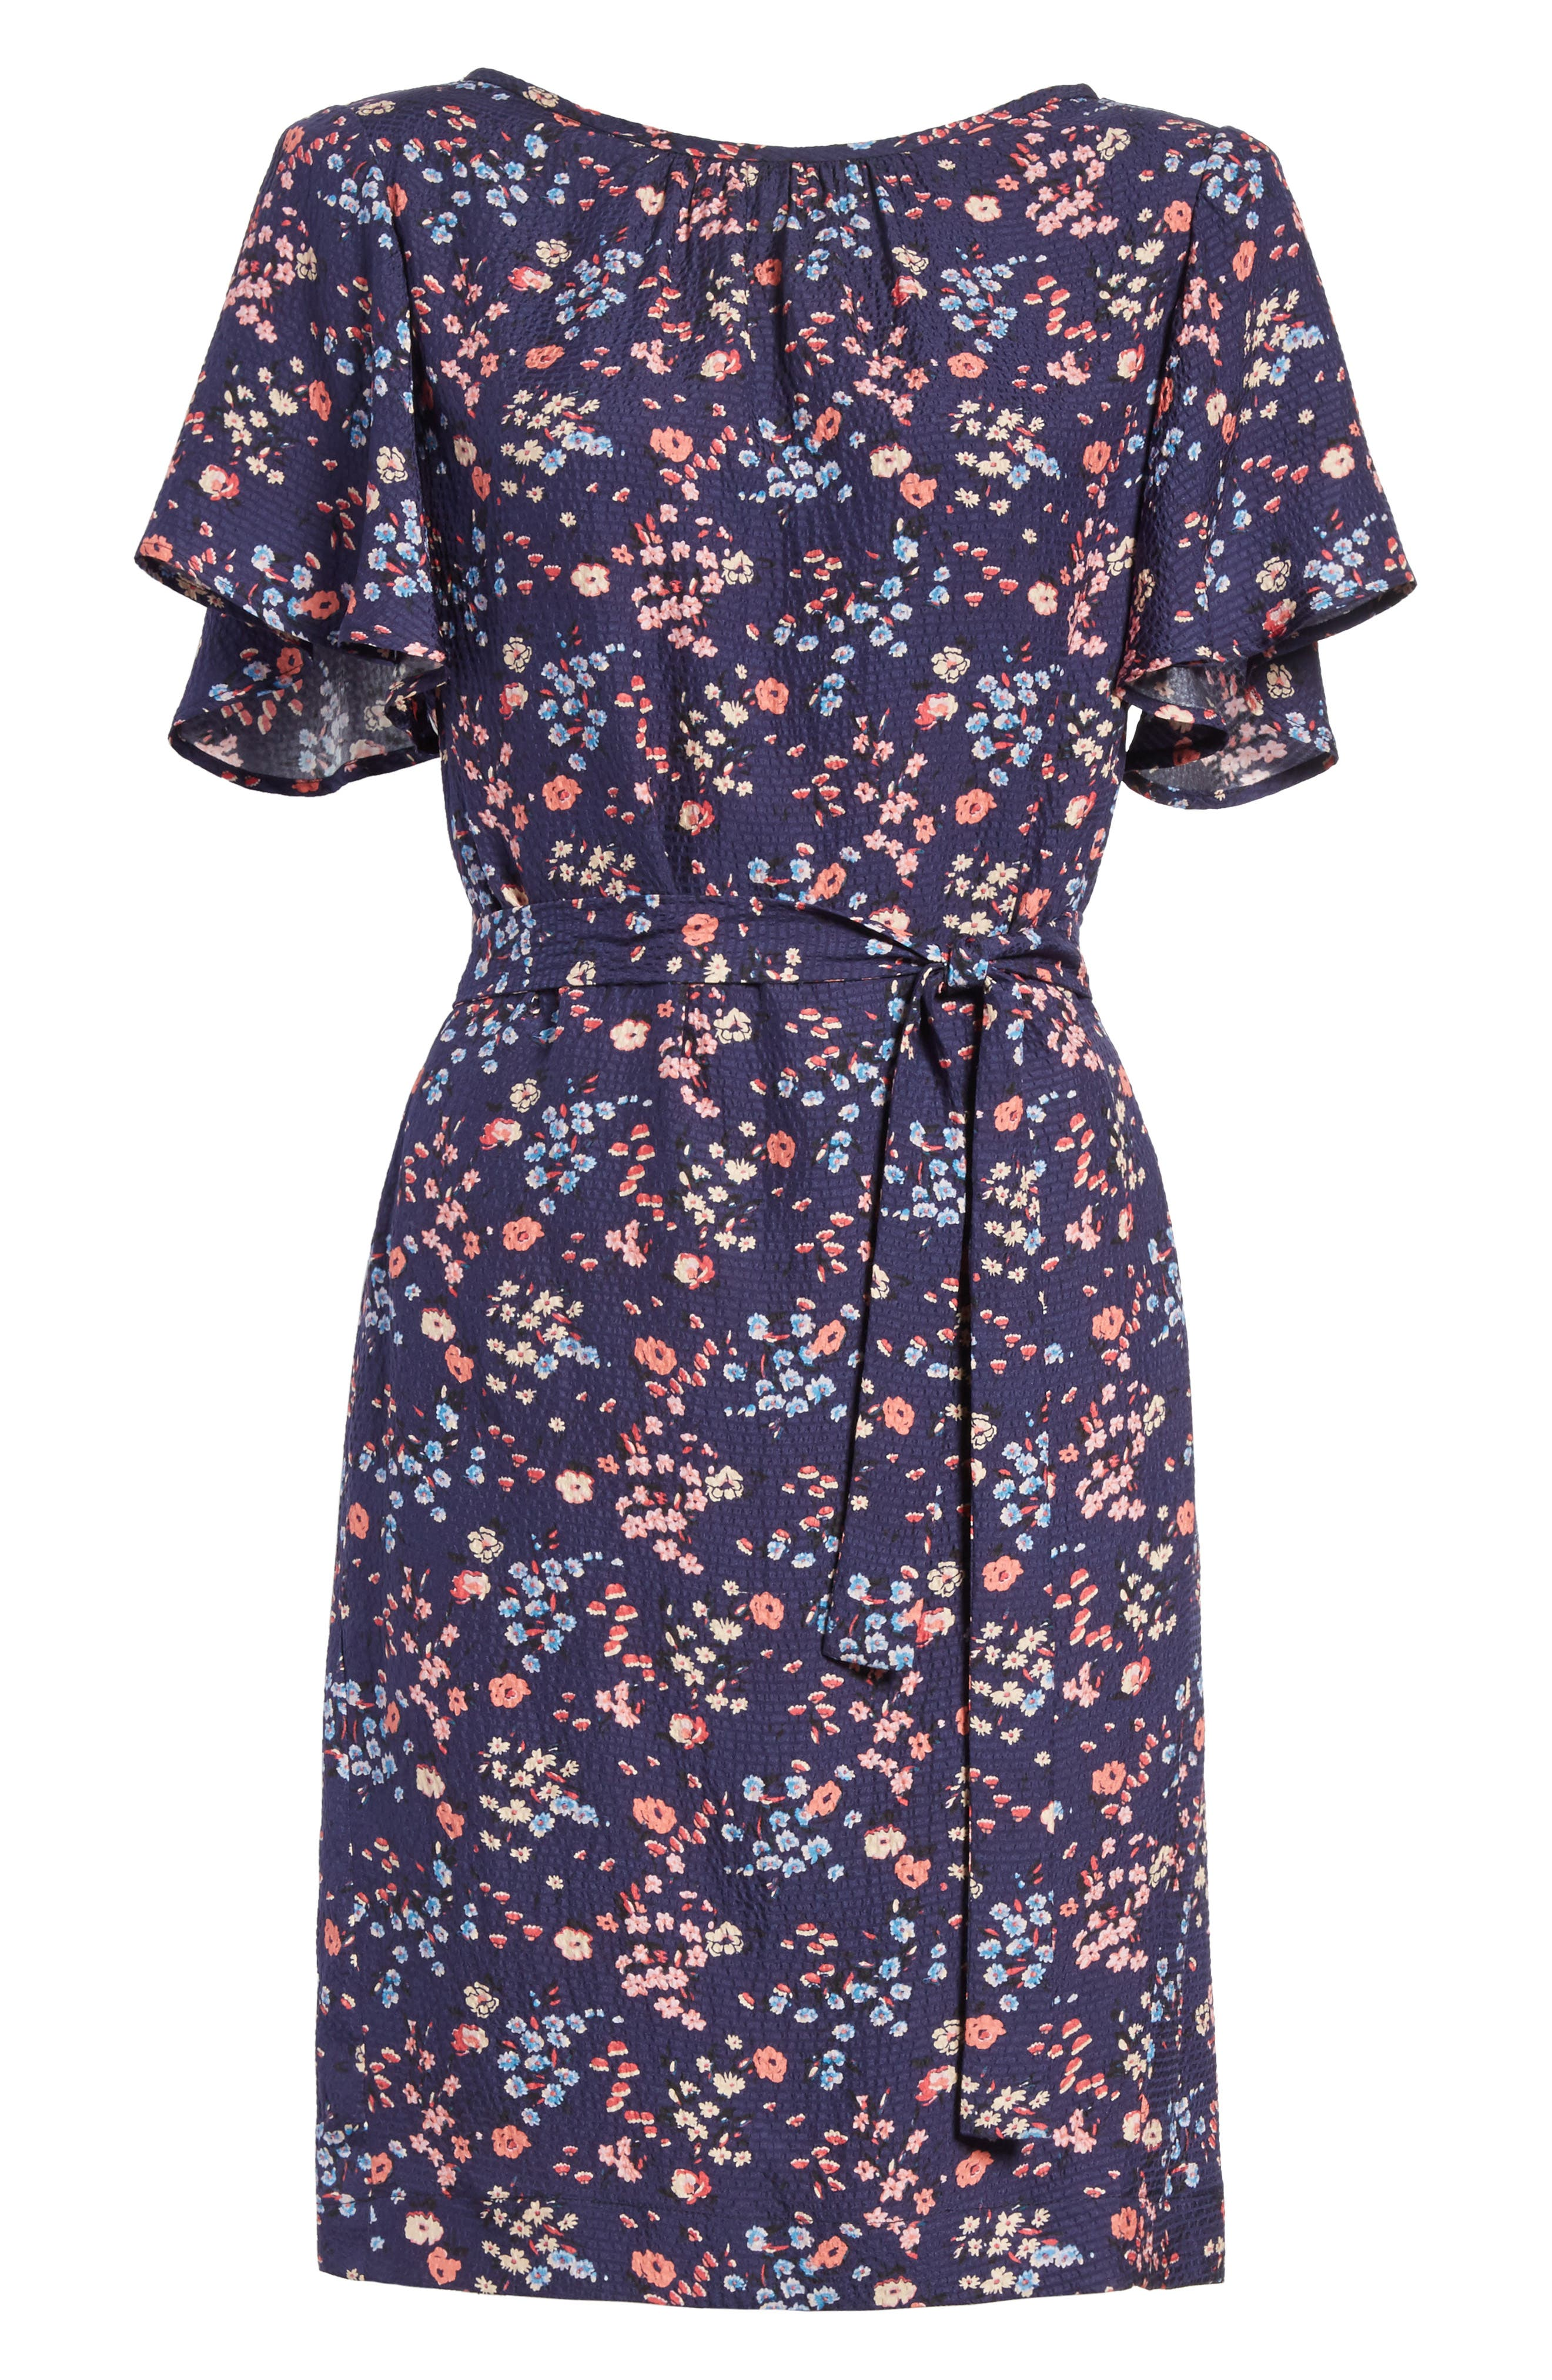 Woodland Floral Print Silk Dress,                             Alternate thumbnail 6, color,